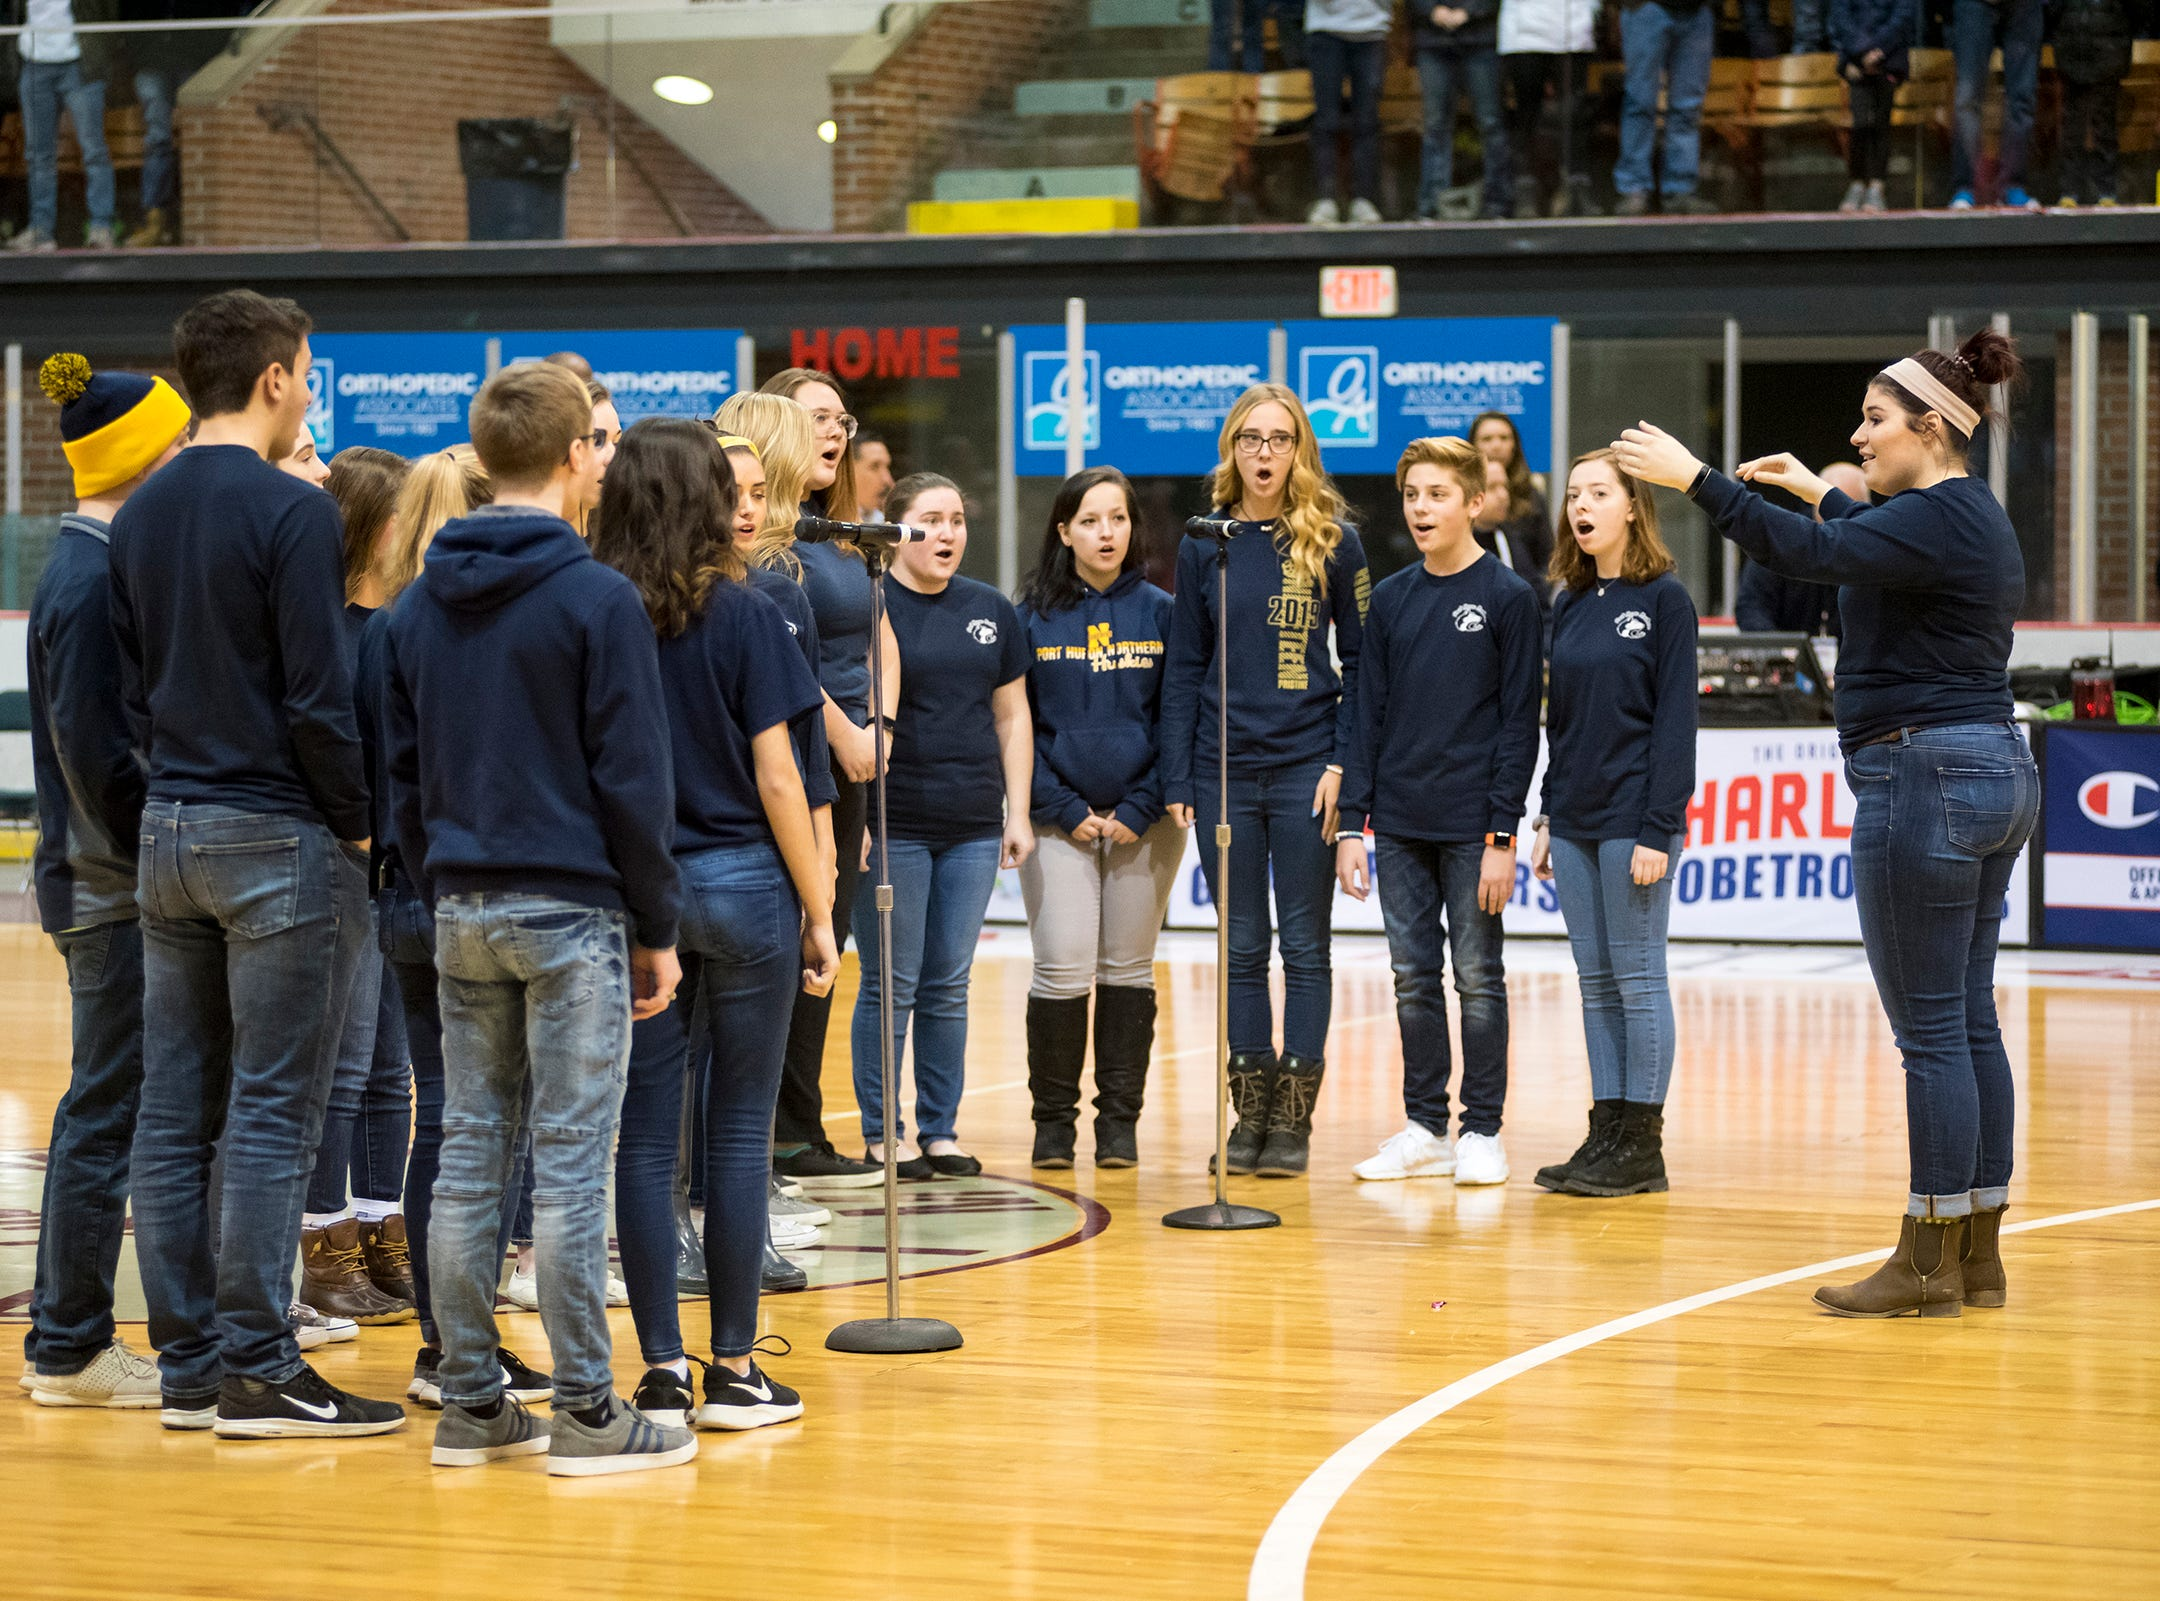 Members of the Port Huron Northern choir sing the National Anthem Saturday, Feb. 2, 2019 before the Harlem Globetrotters play against the Washington Generals at McMorran Arena.